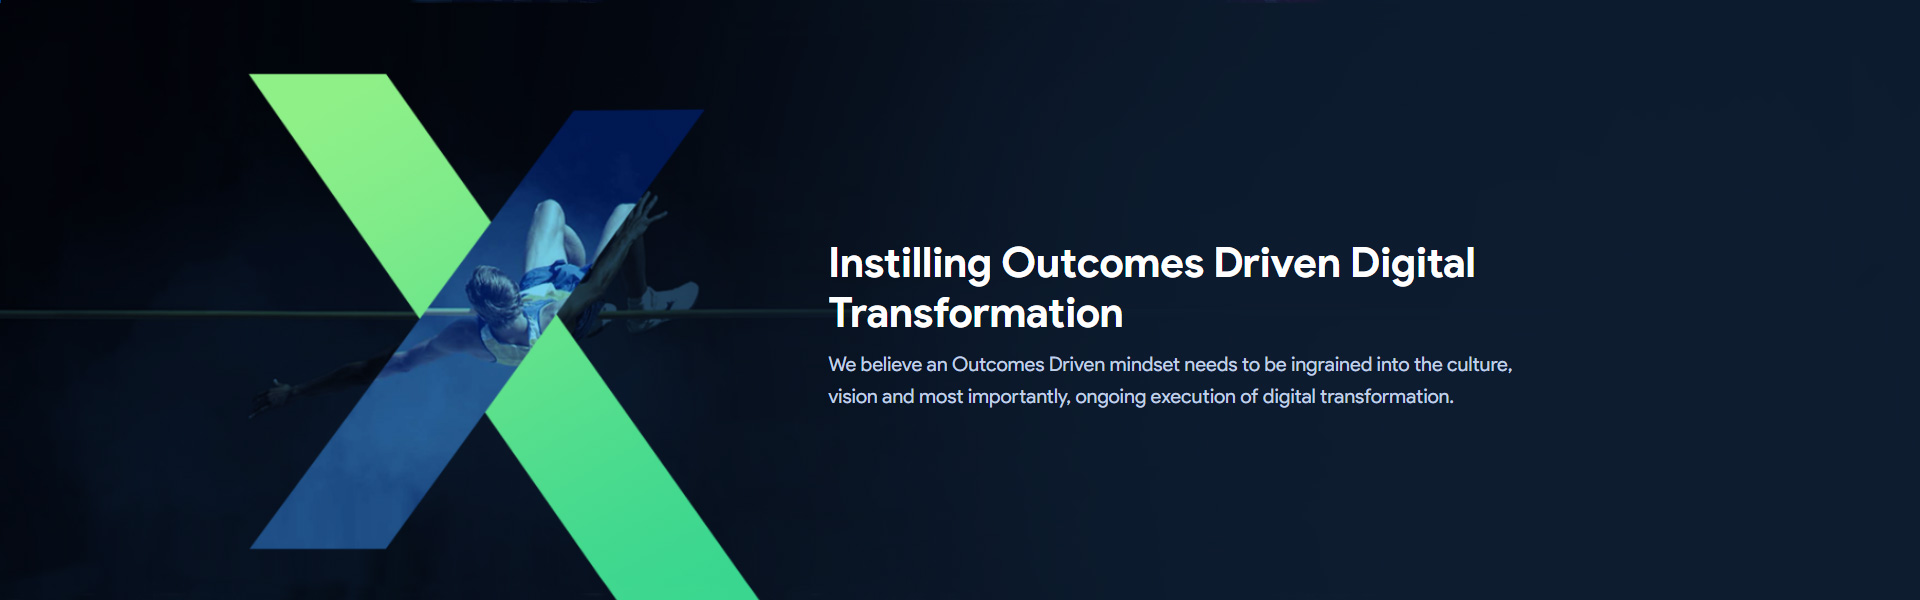 DX Factor DX has to be Outcomes Driven & Data Powered DXCapture Customer Acquisition & Growth Prescription Customer Churn Avoidance Customer Experience Recommendation